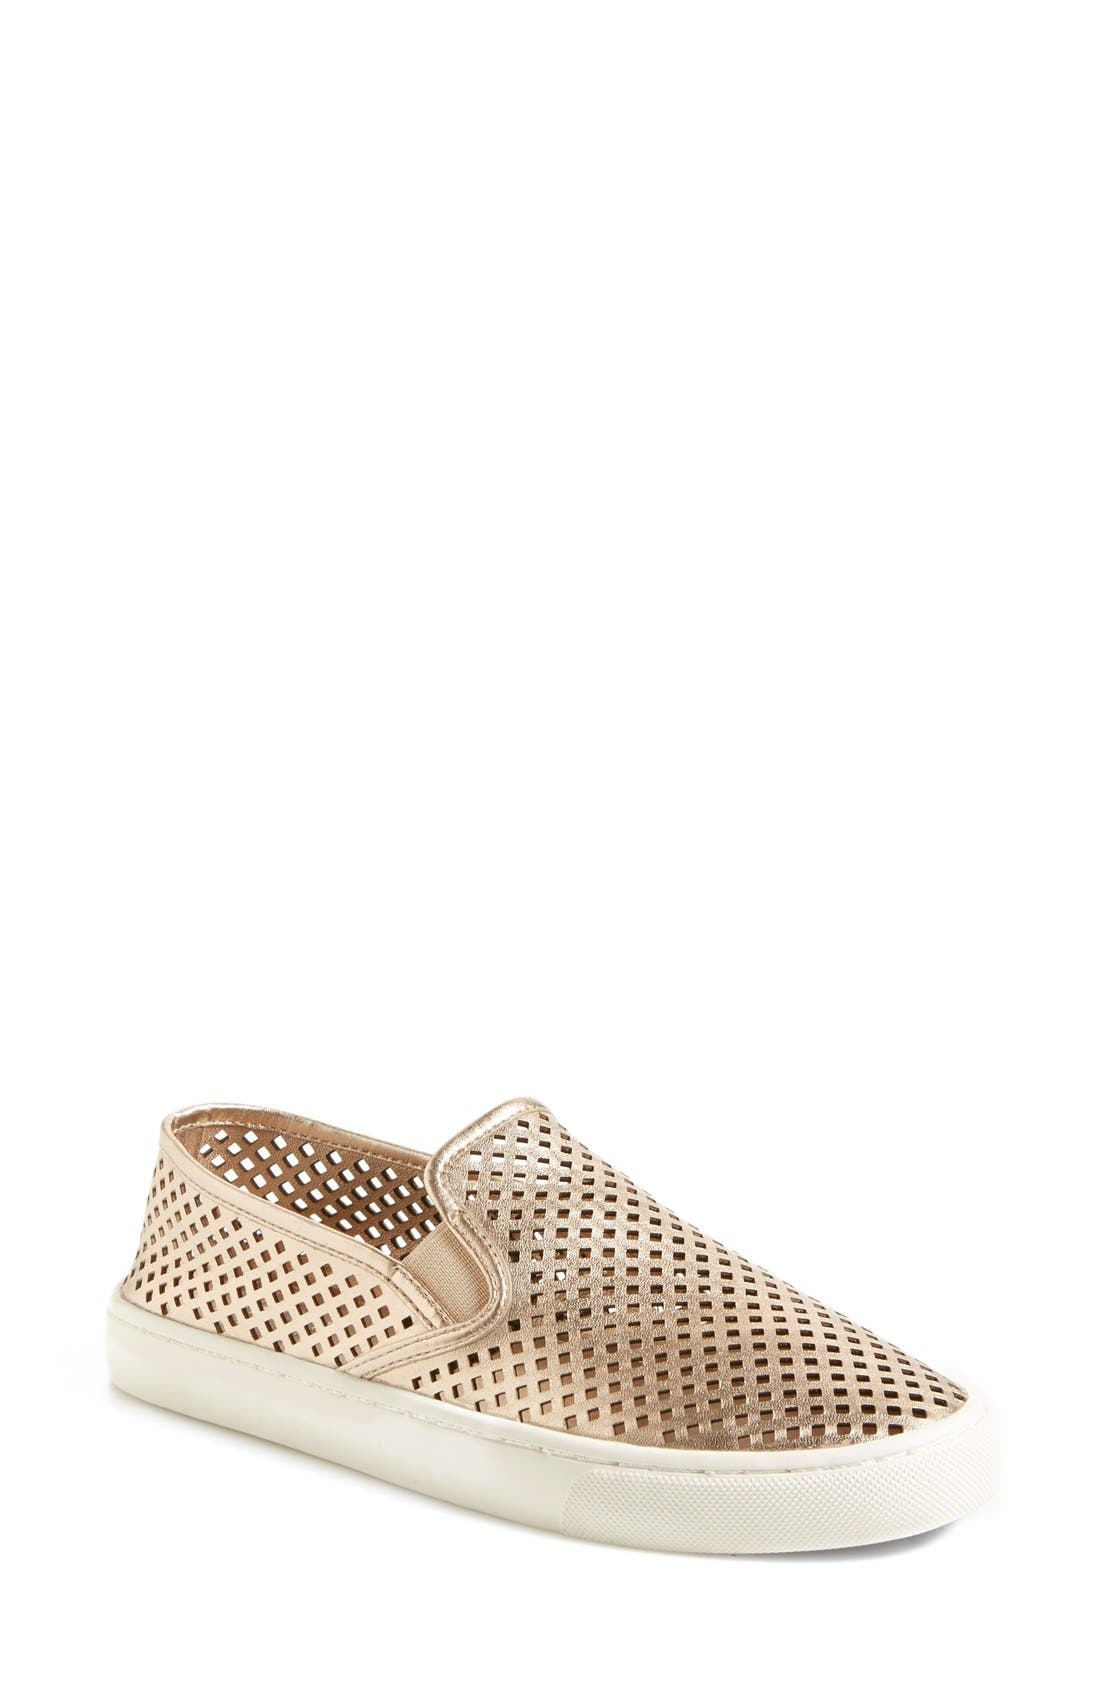 Alternate Image 1 Selected - Tory Burch 'Jesse' Perforated Sneaker (Women)